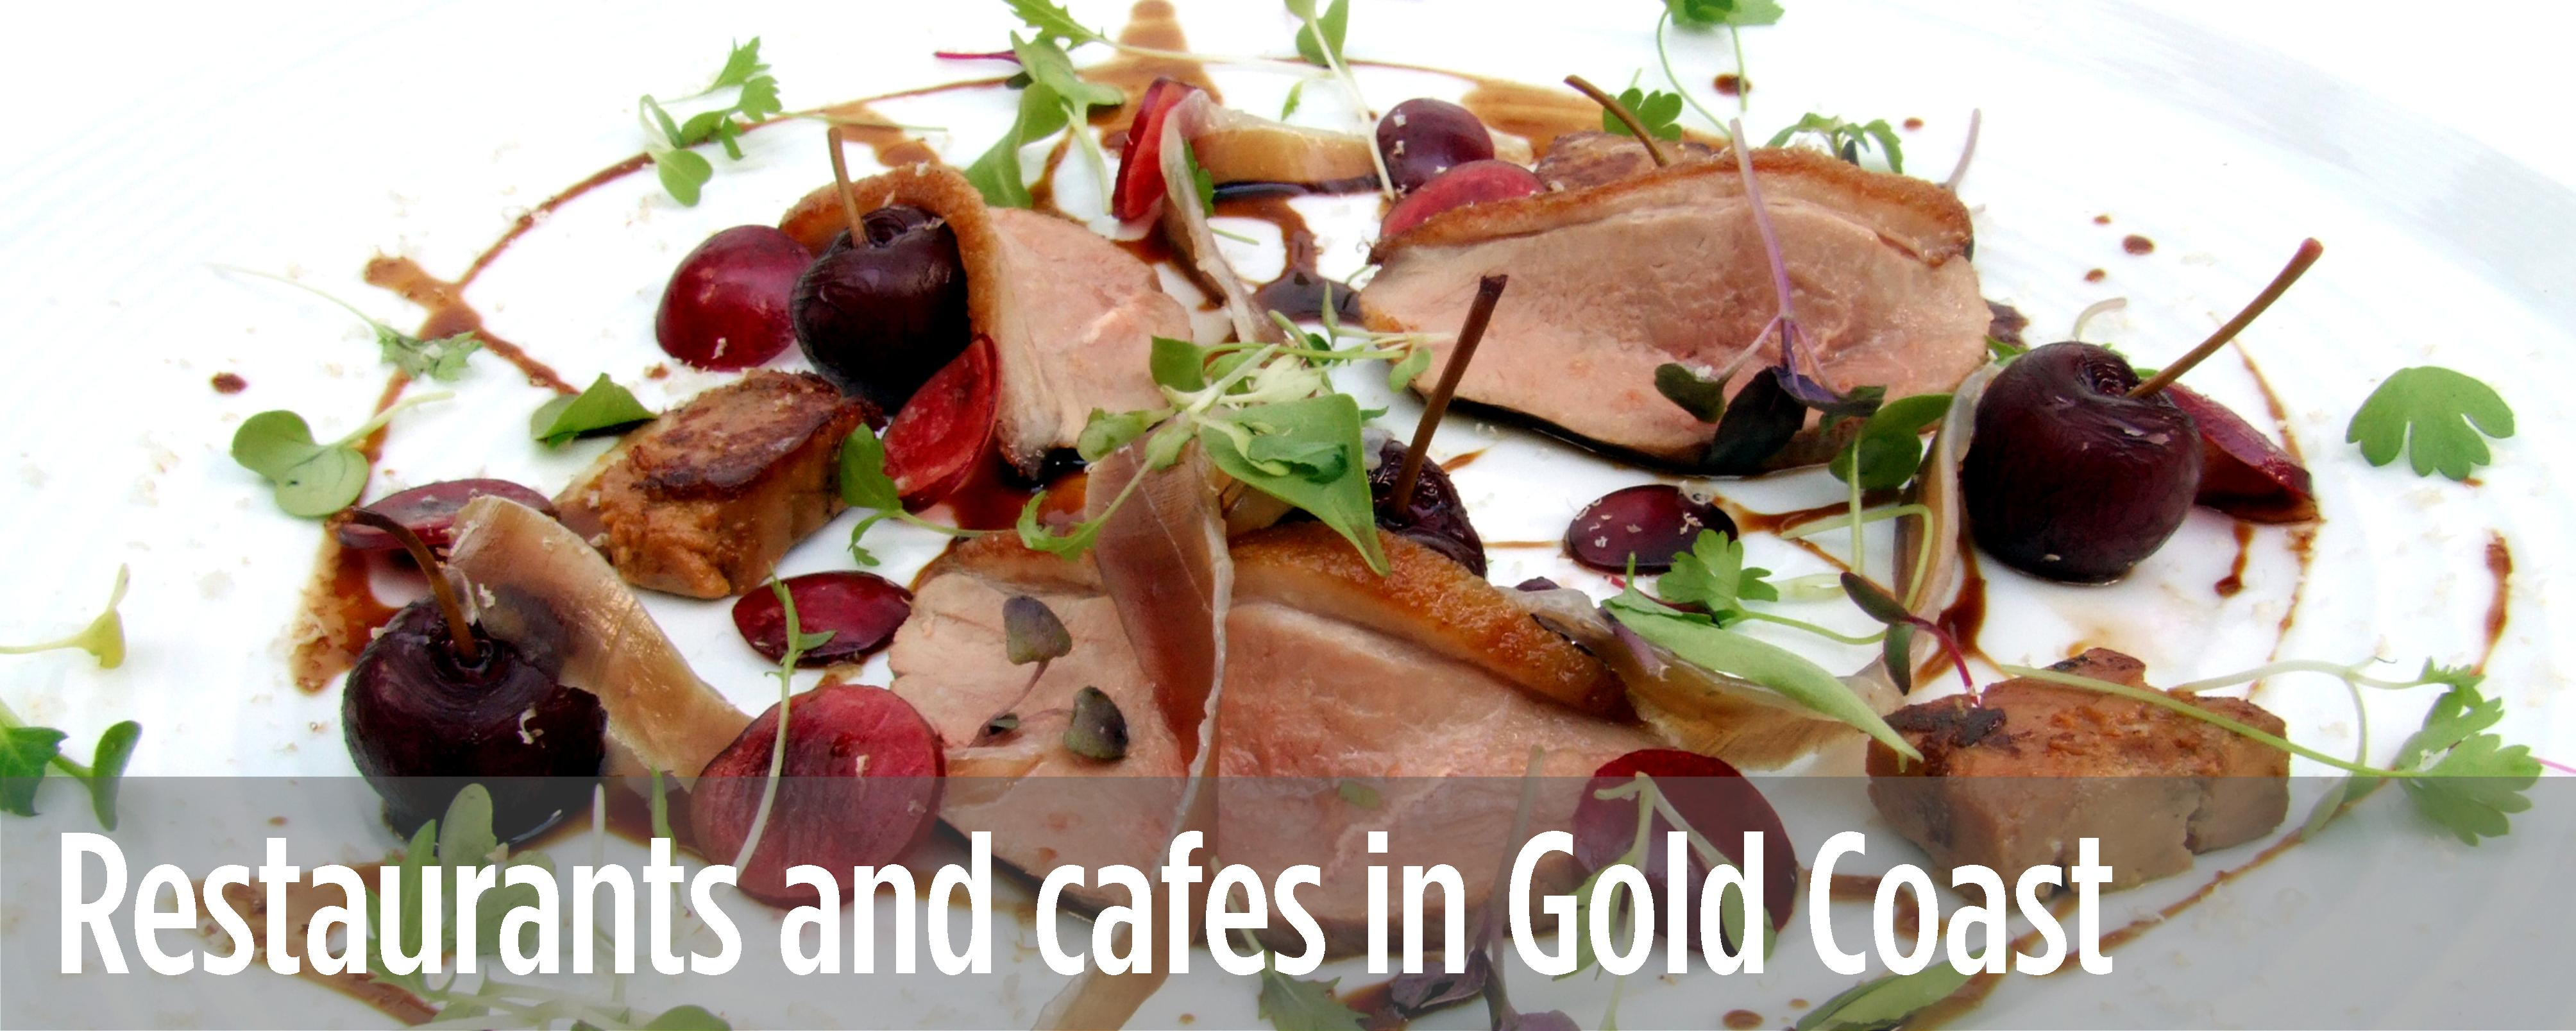 Gold Coast Restaurant & Cafe Guide Directory